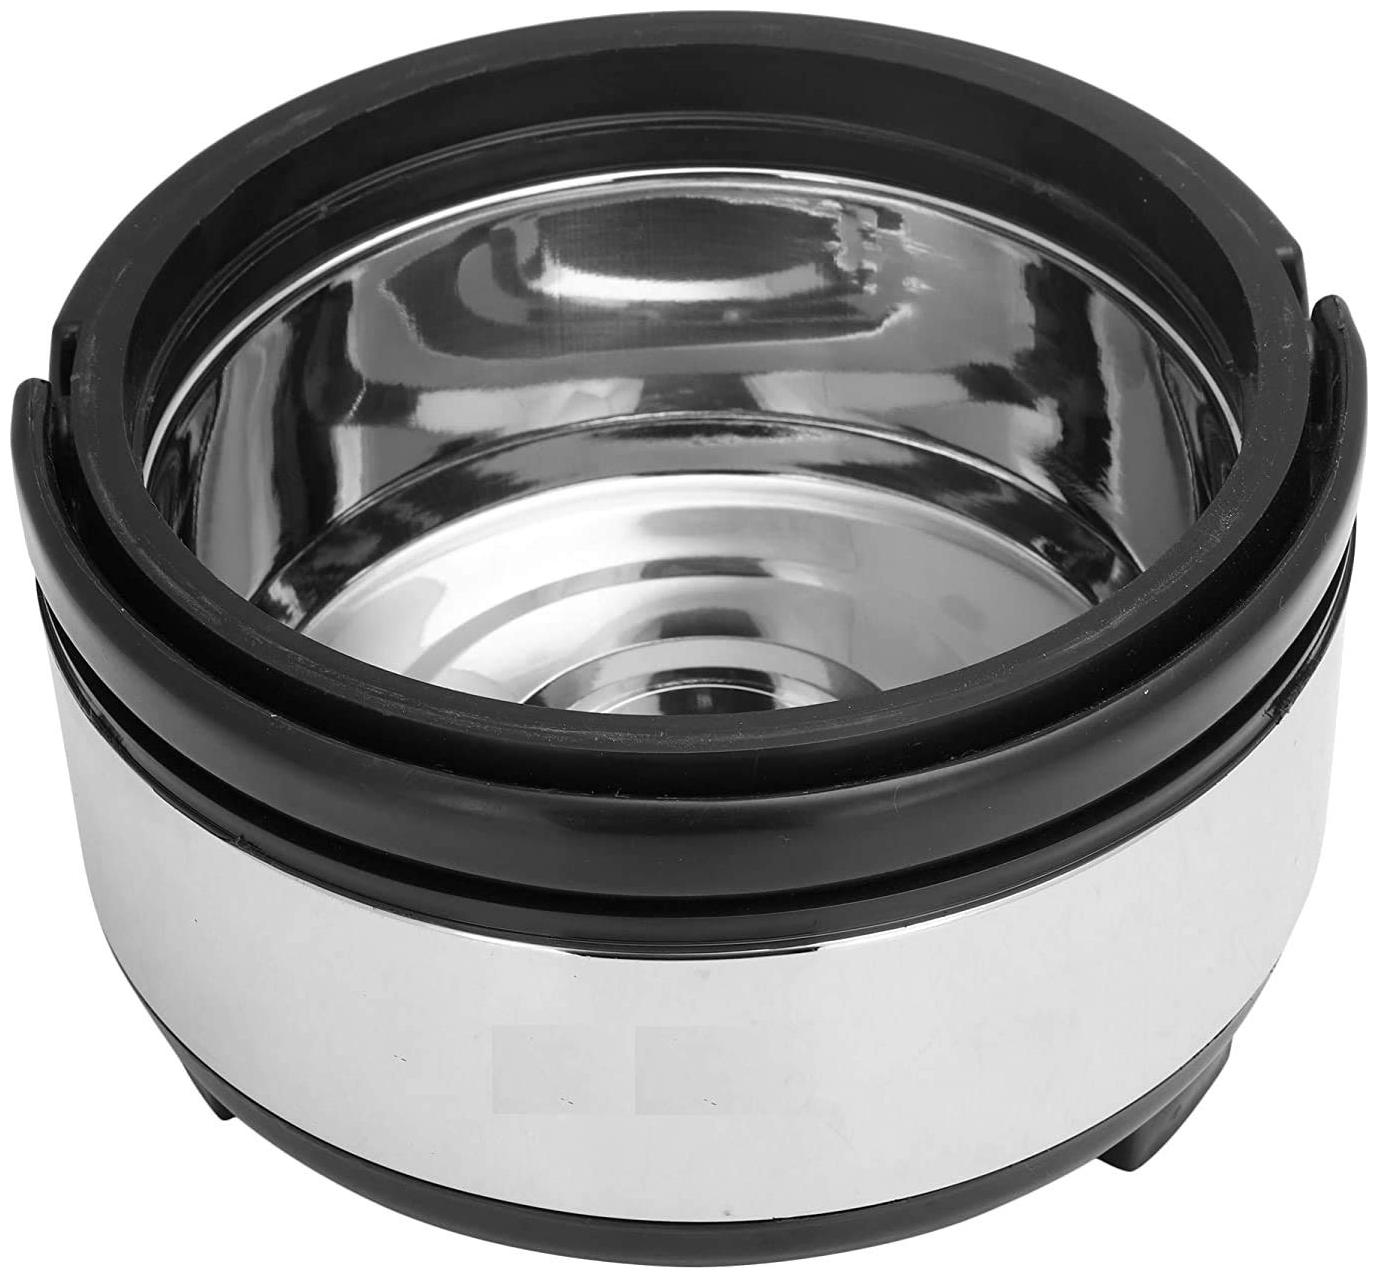 Homfine Steel 2.5 litre Hotpot Casserole  Double Wall Insulated 2500 ml Stainless Steel For Hot Meal;Chapati;Curry;Roti/Warm Food Serving  With Lid